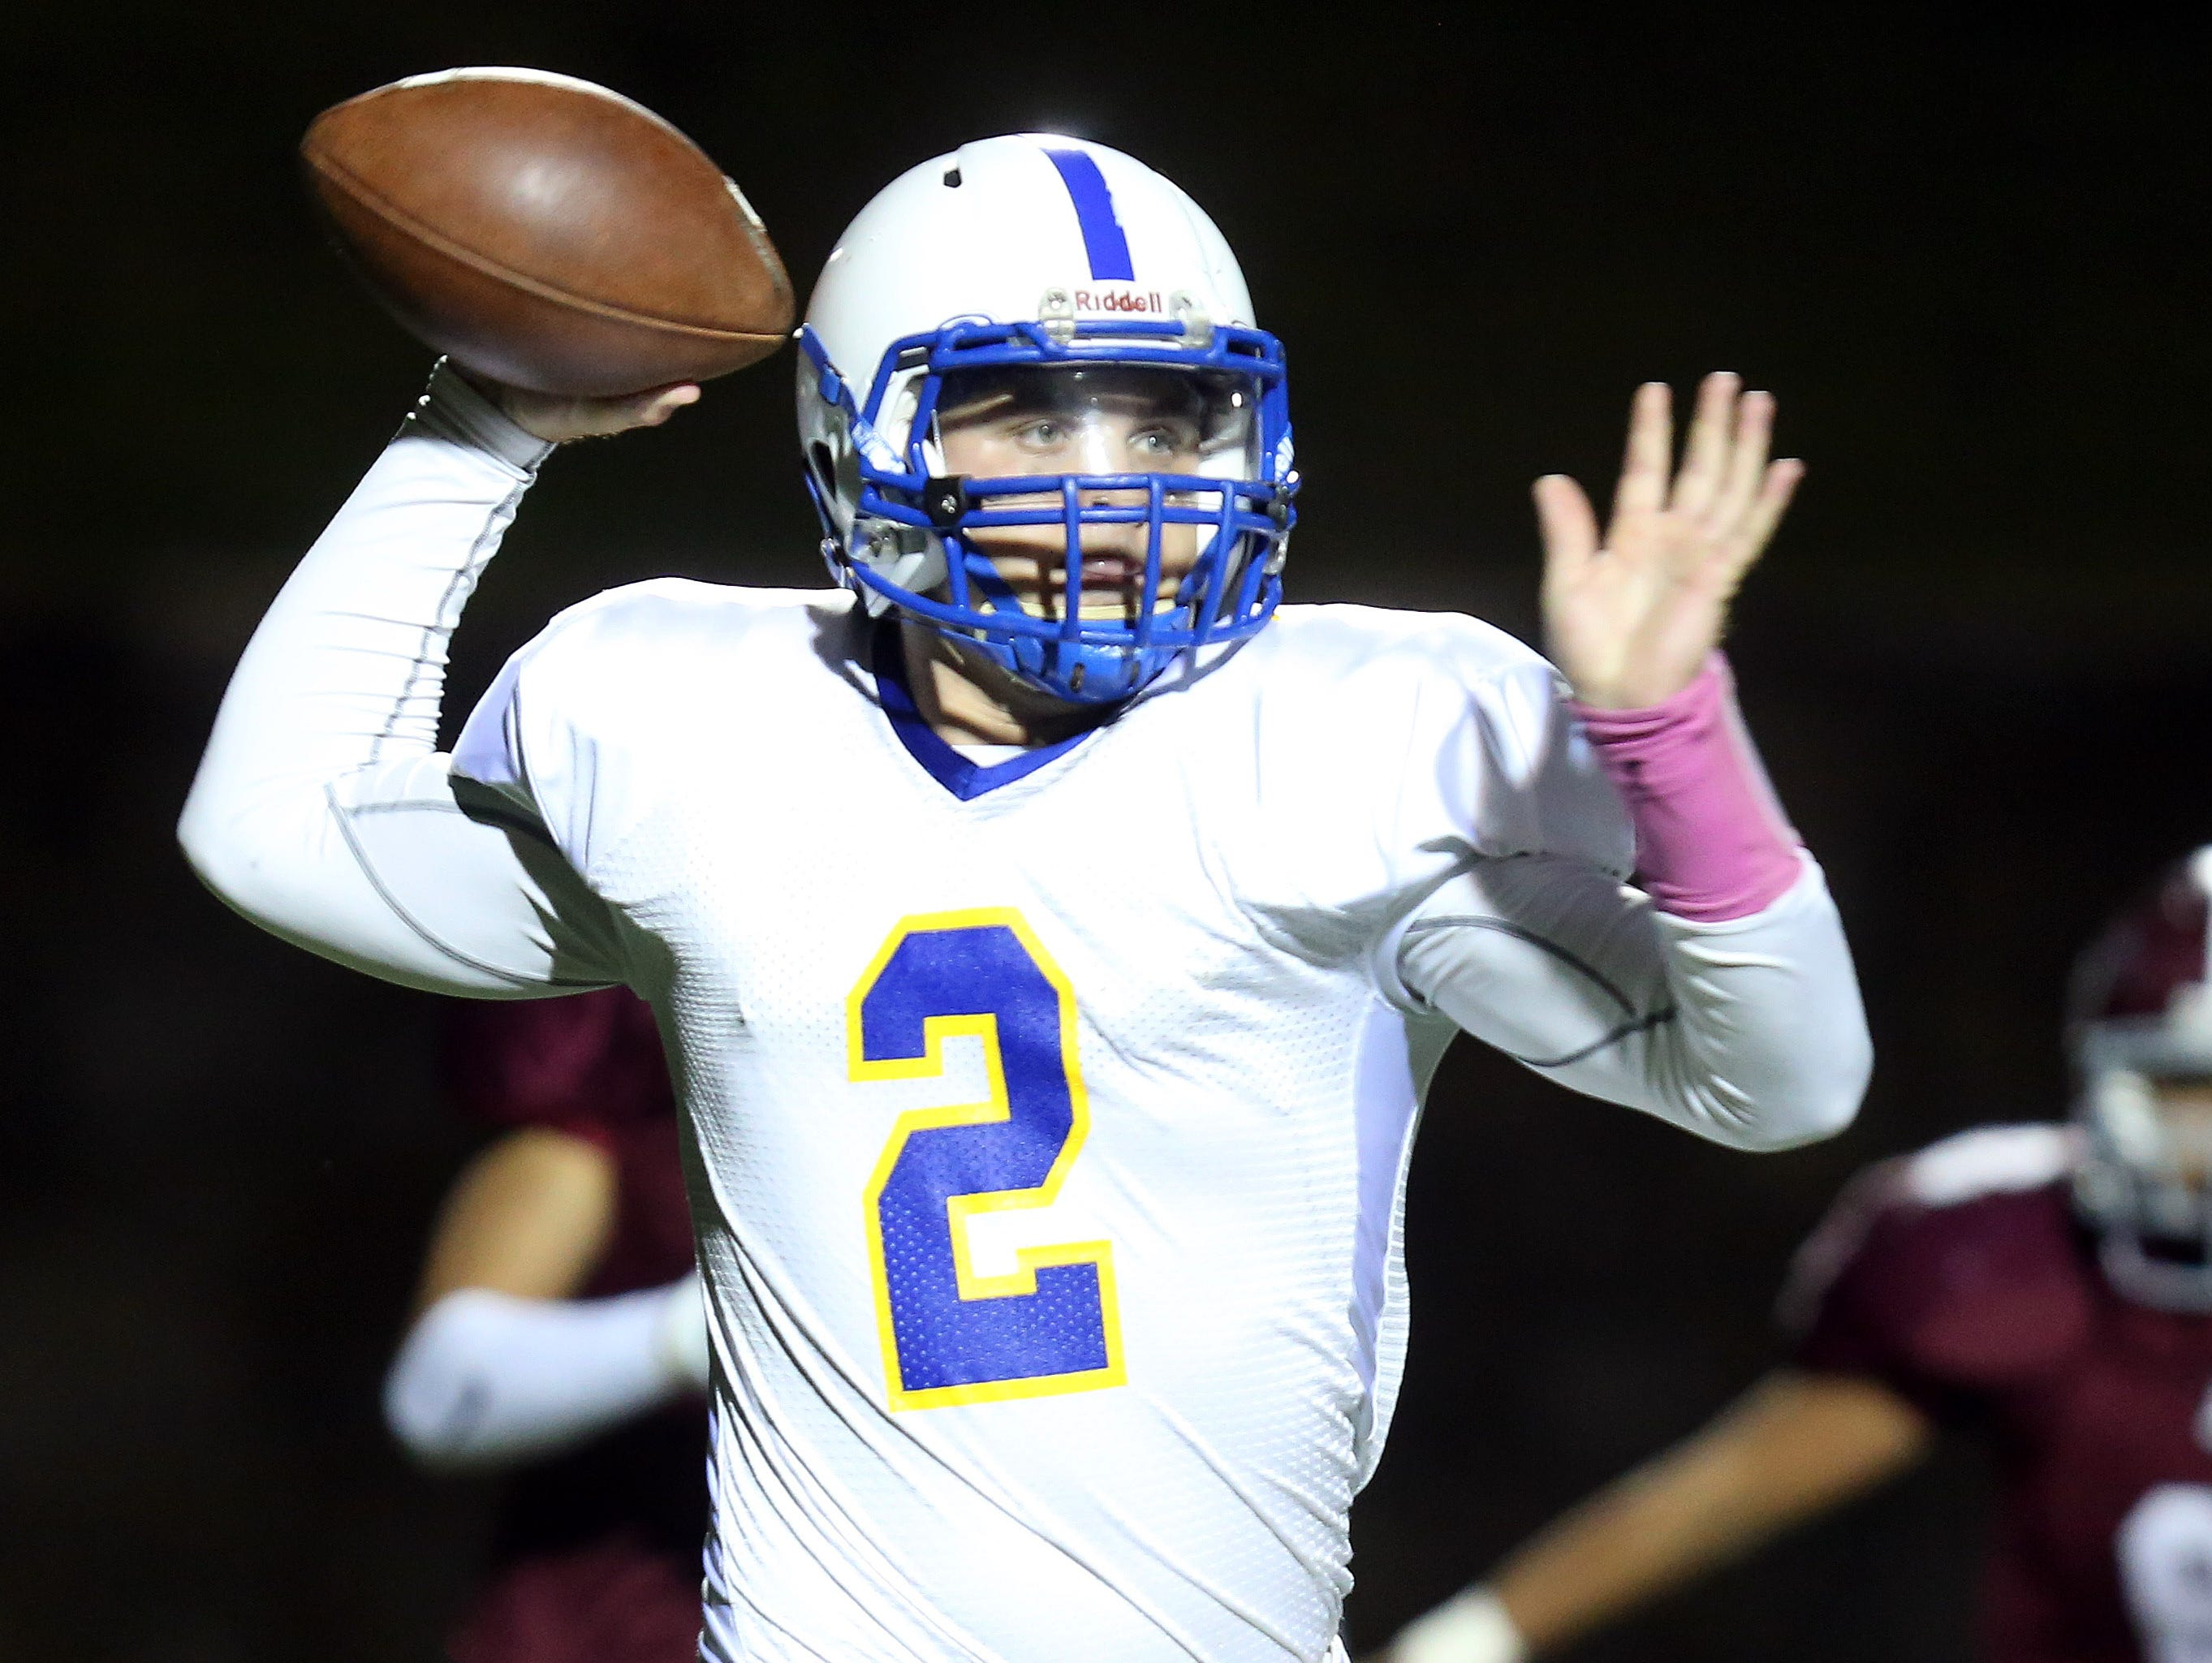 Quarterback Julian McGarvey looks to pass for Ardsley in a 14-7 win against Valhalla Friday night.